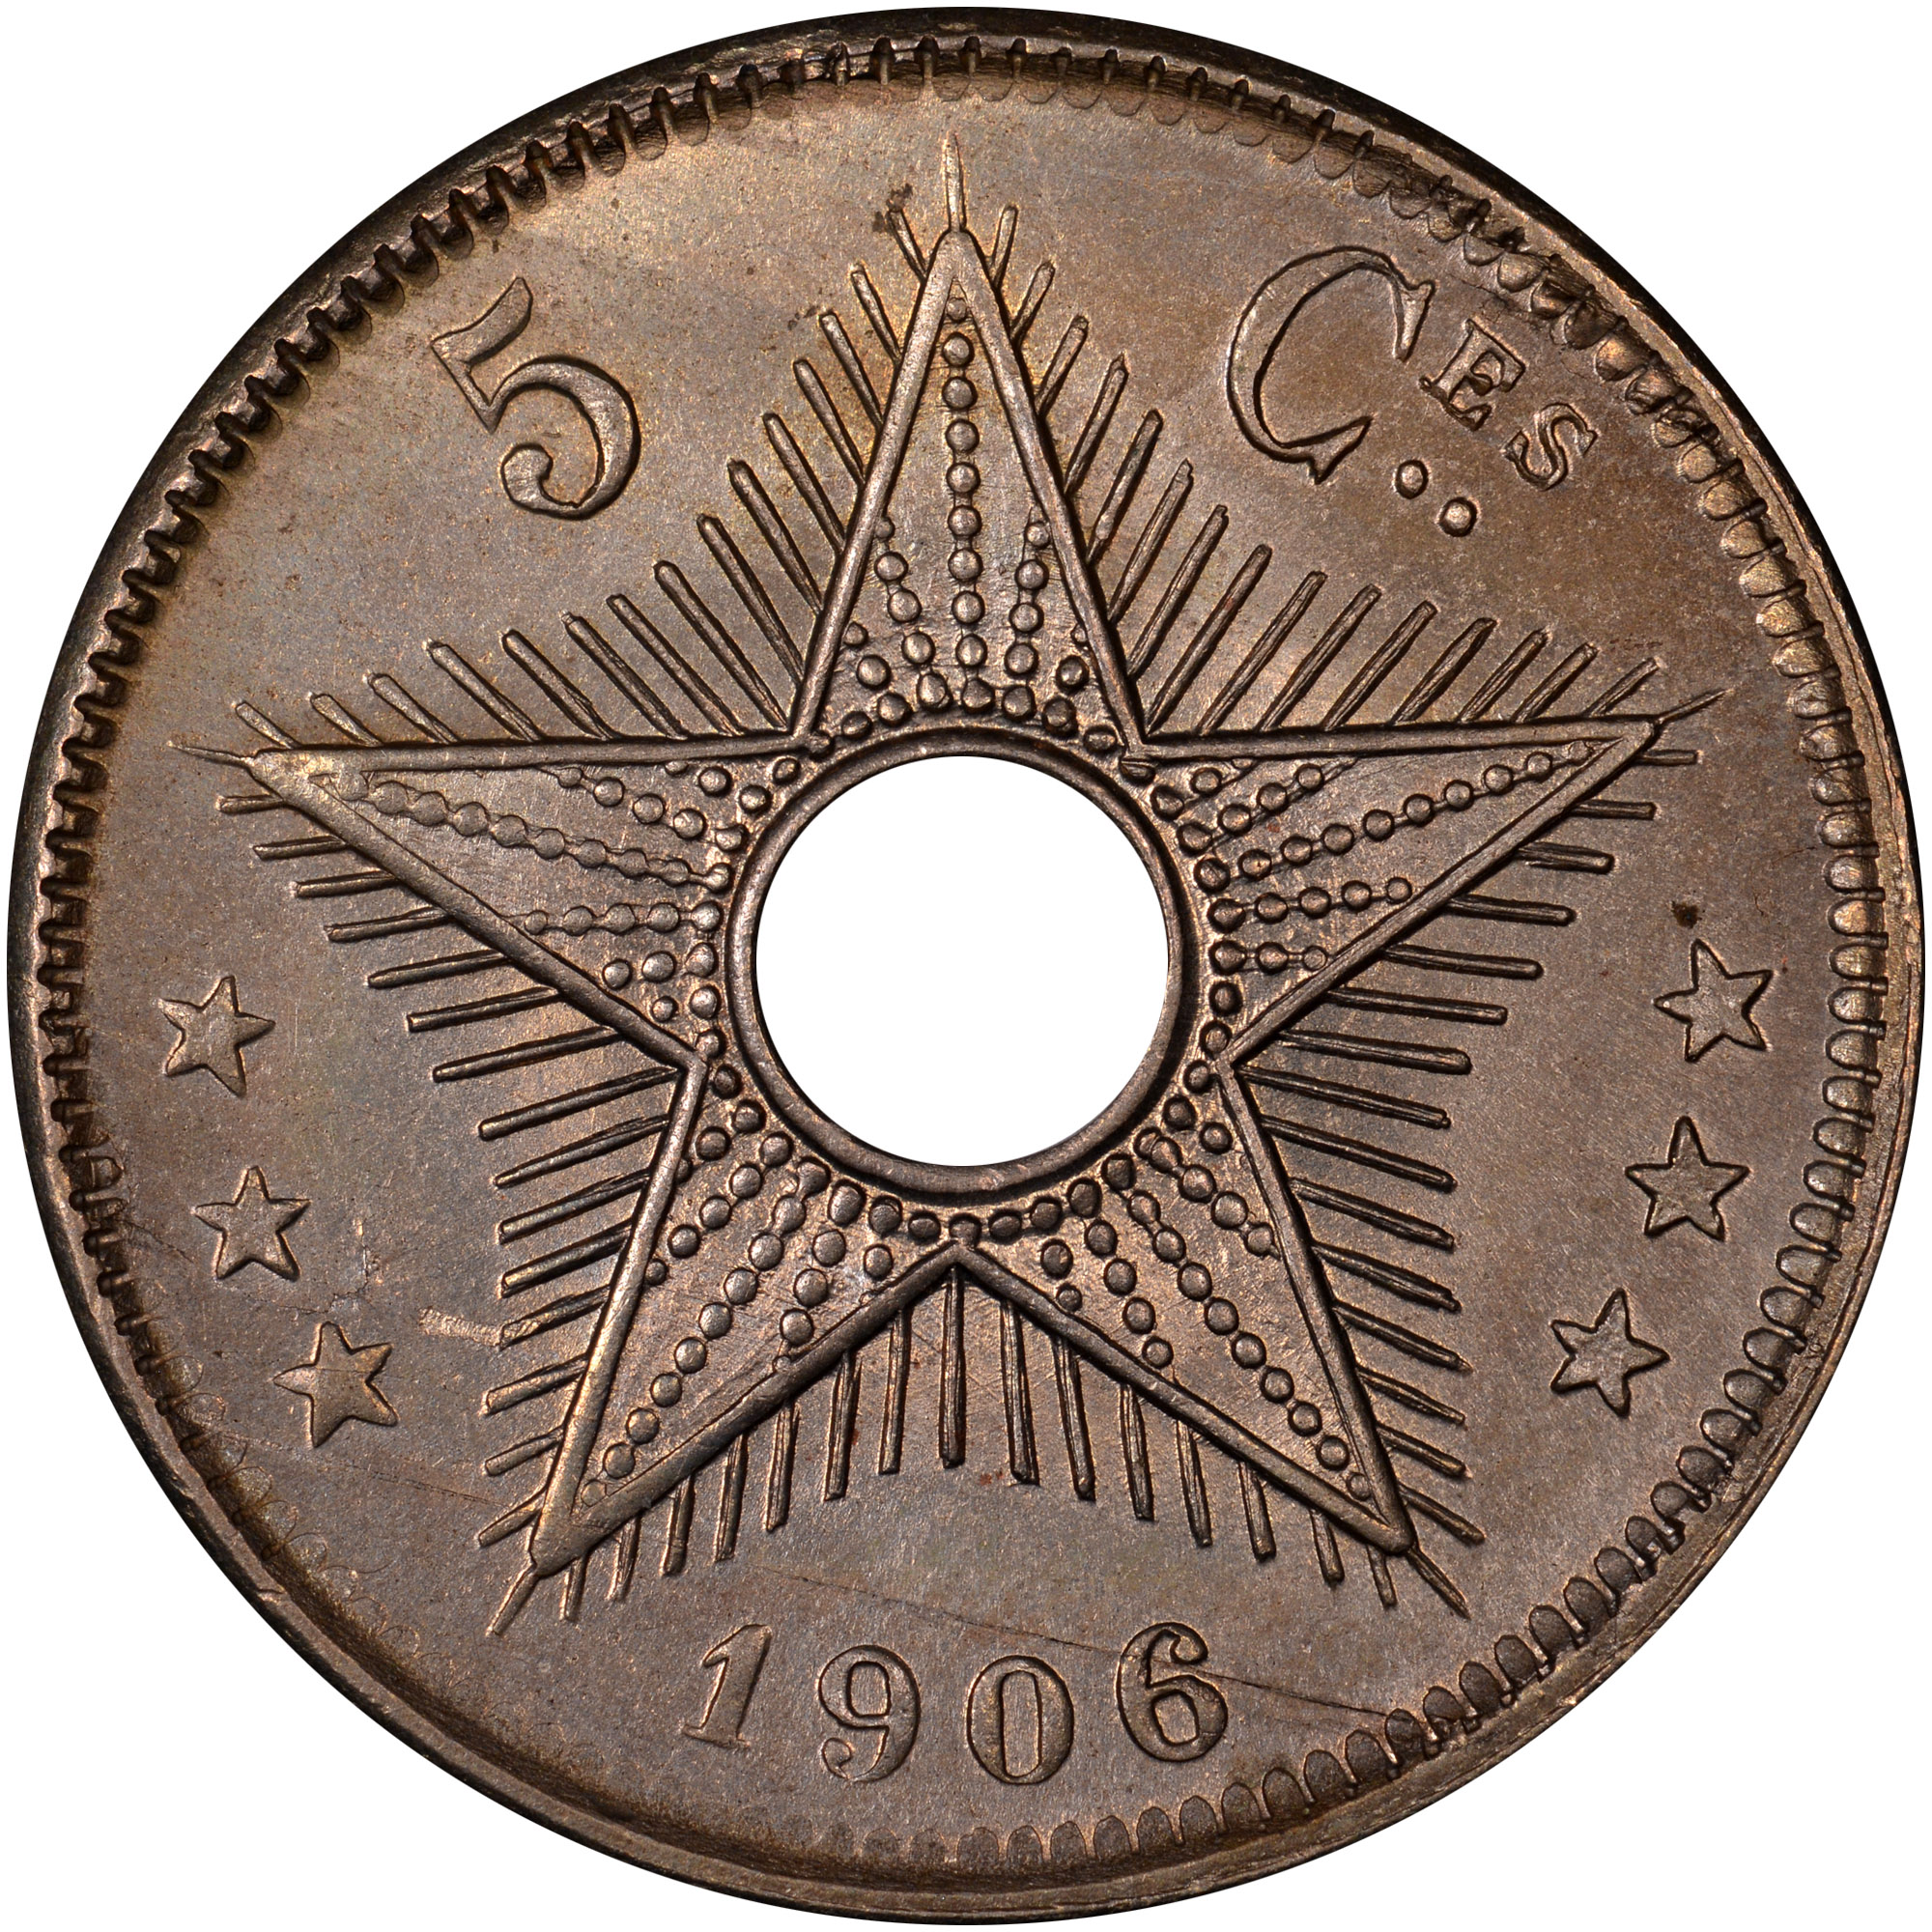 1906-1908/6 Congo Free State 5 Centimes reverse